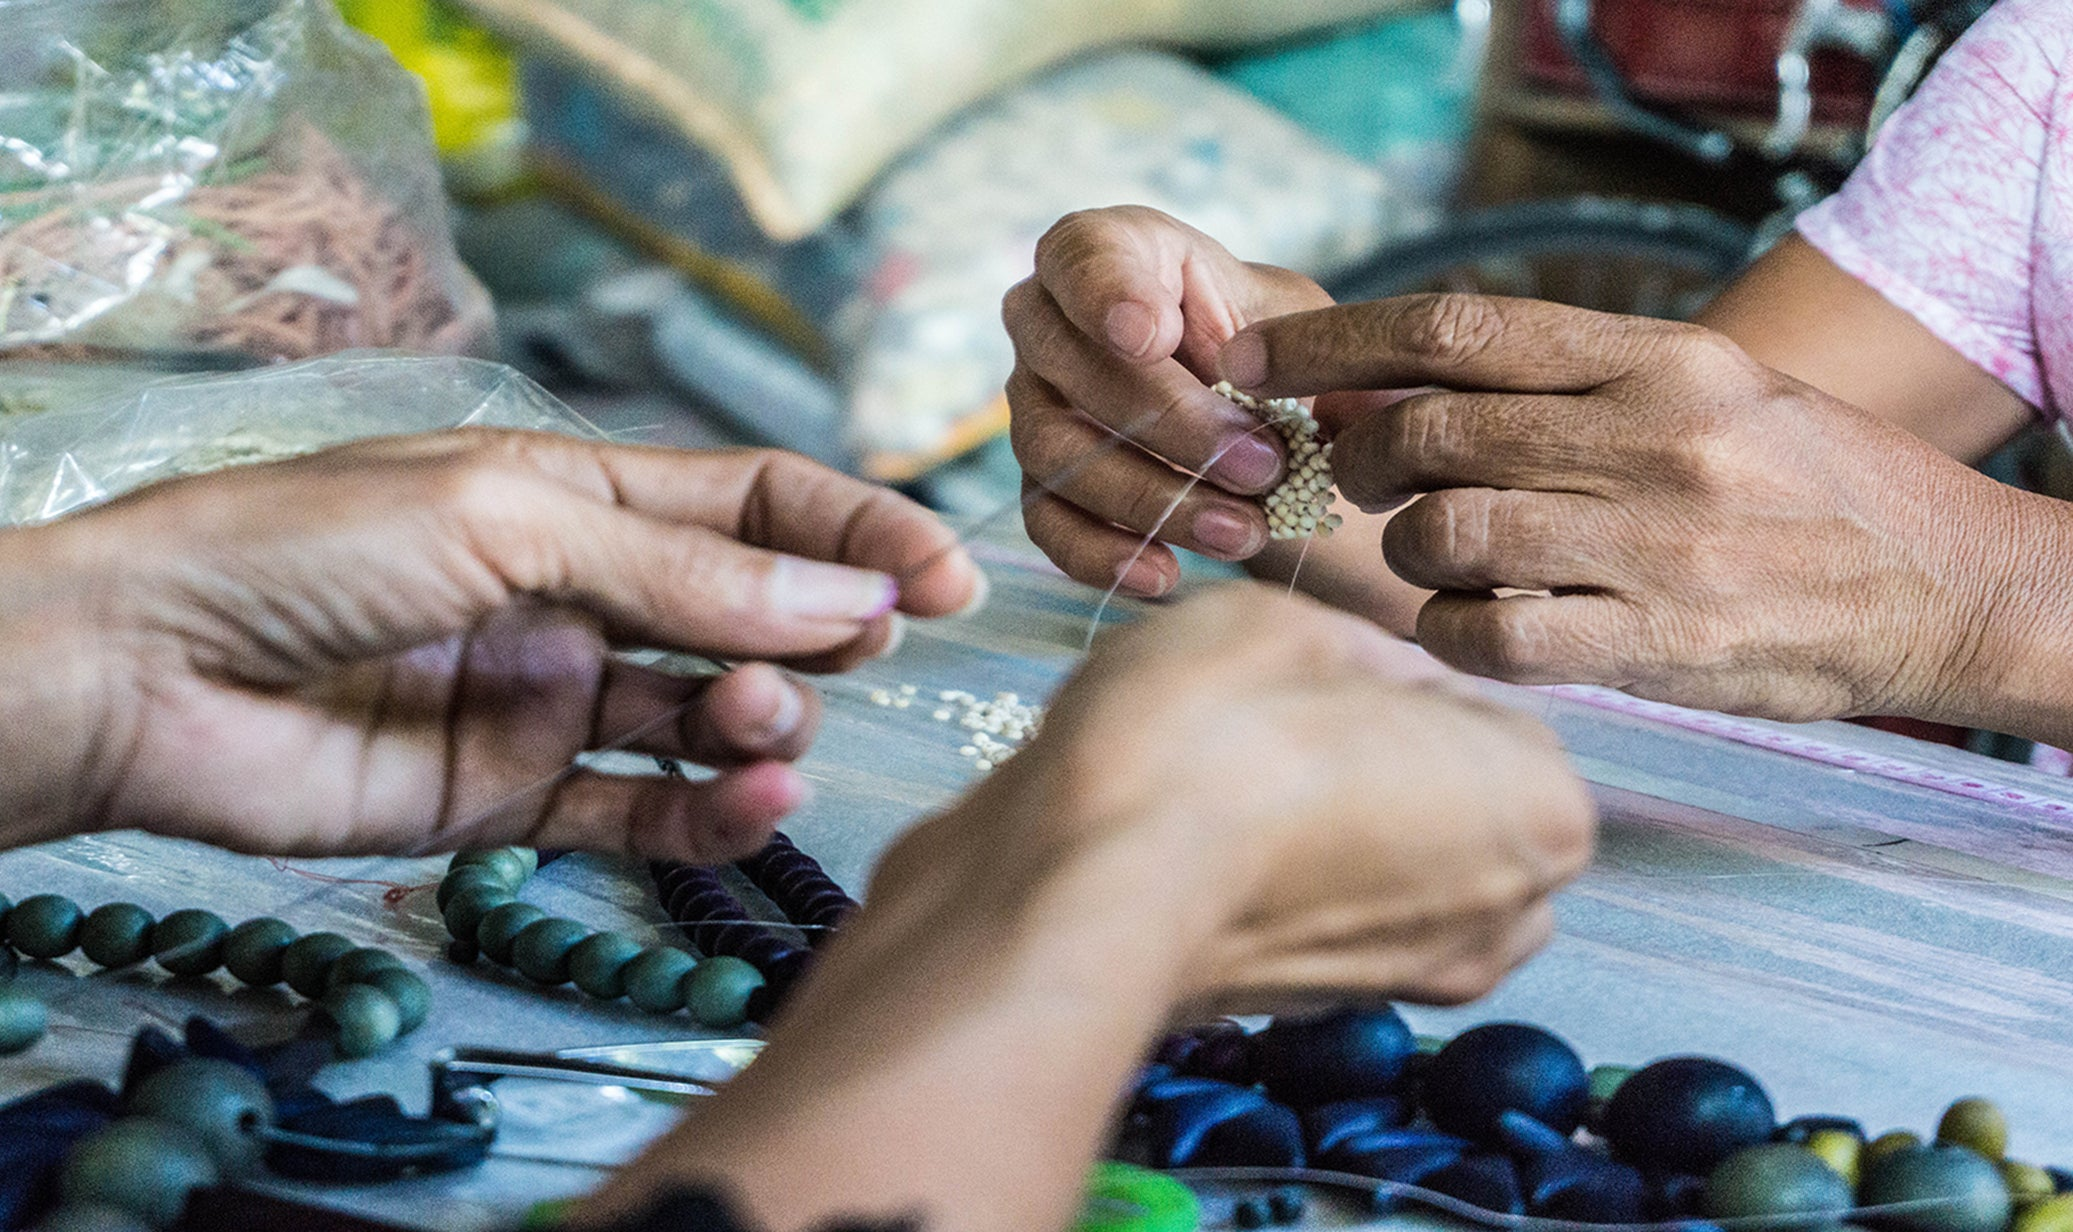 Artisans working on wooden necklaces and bracelets